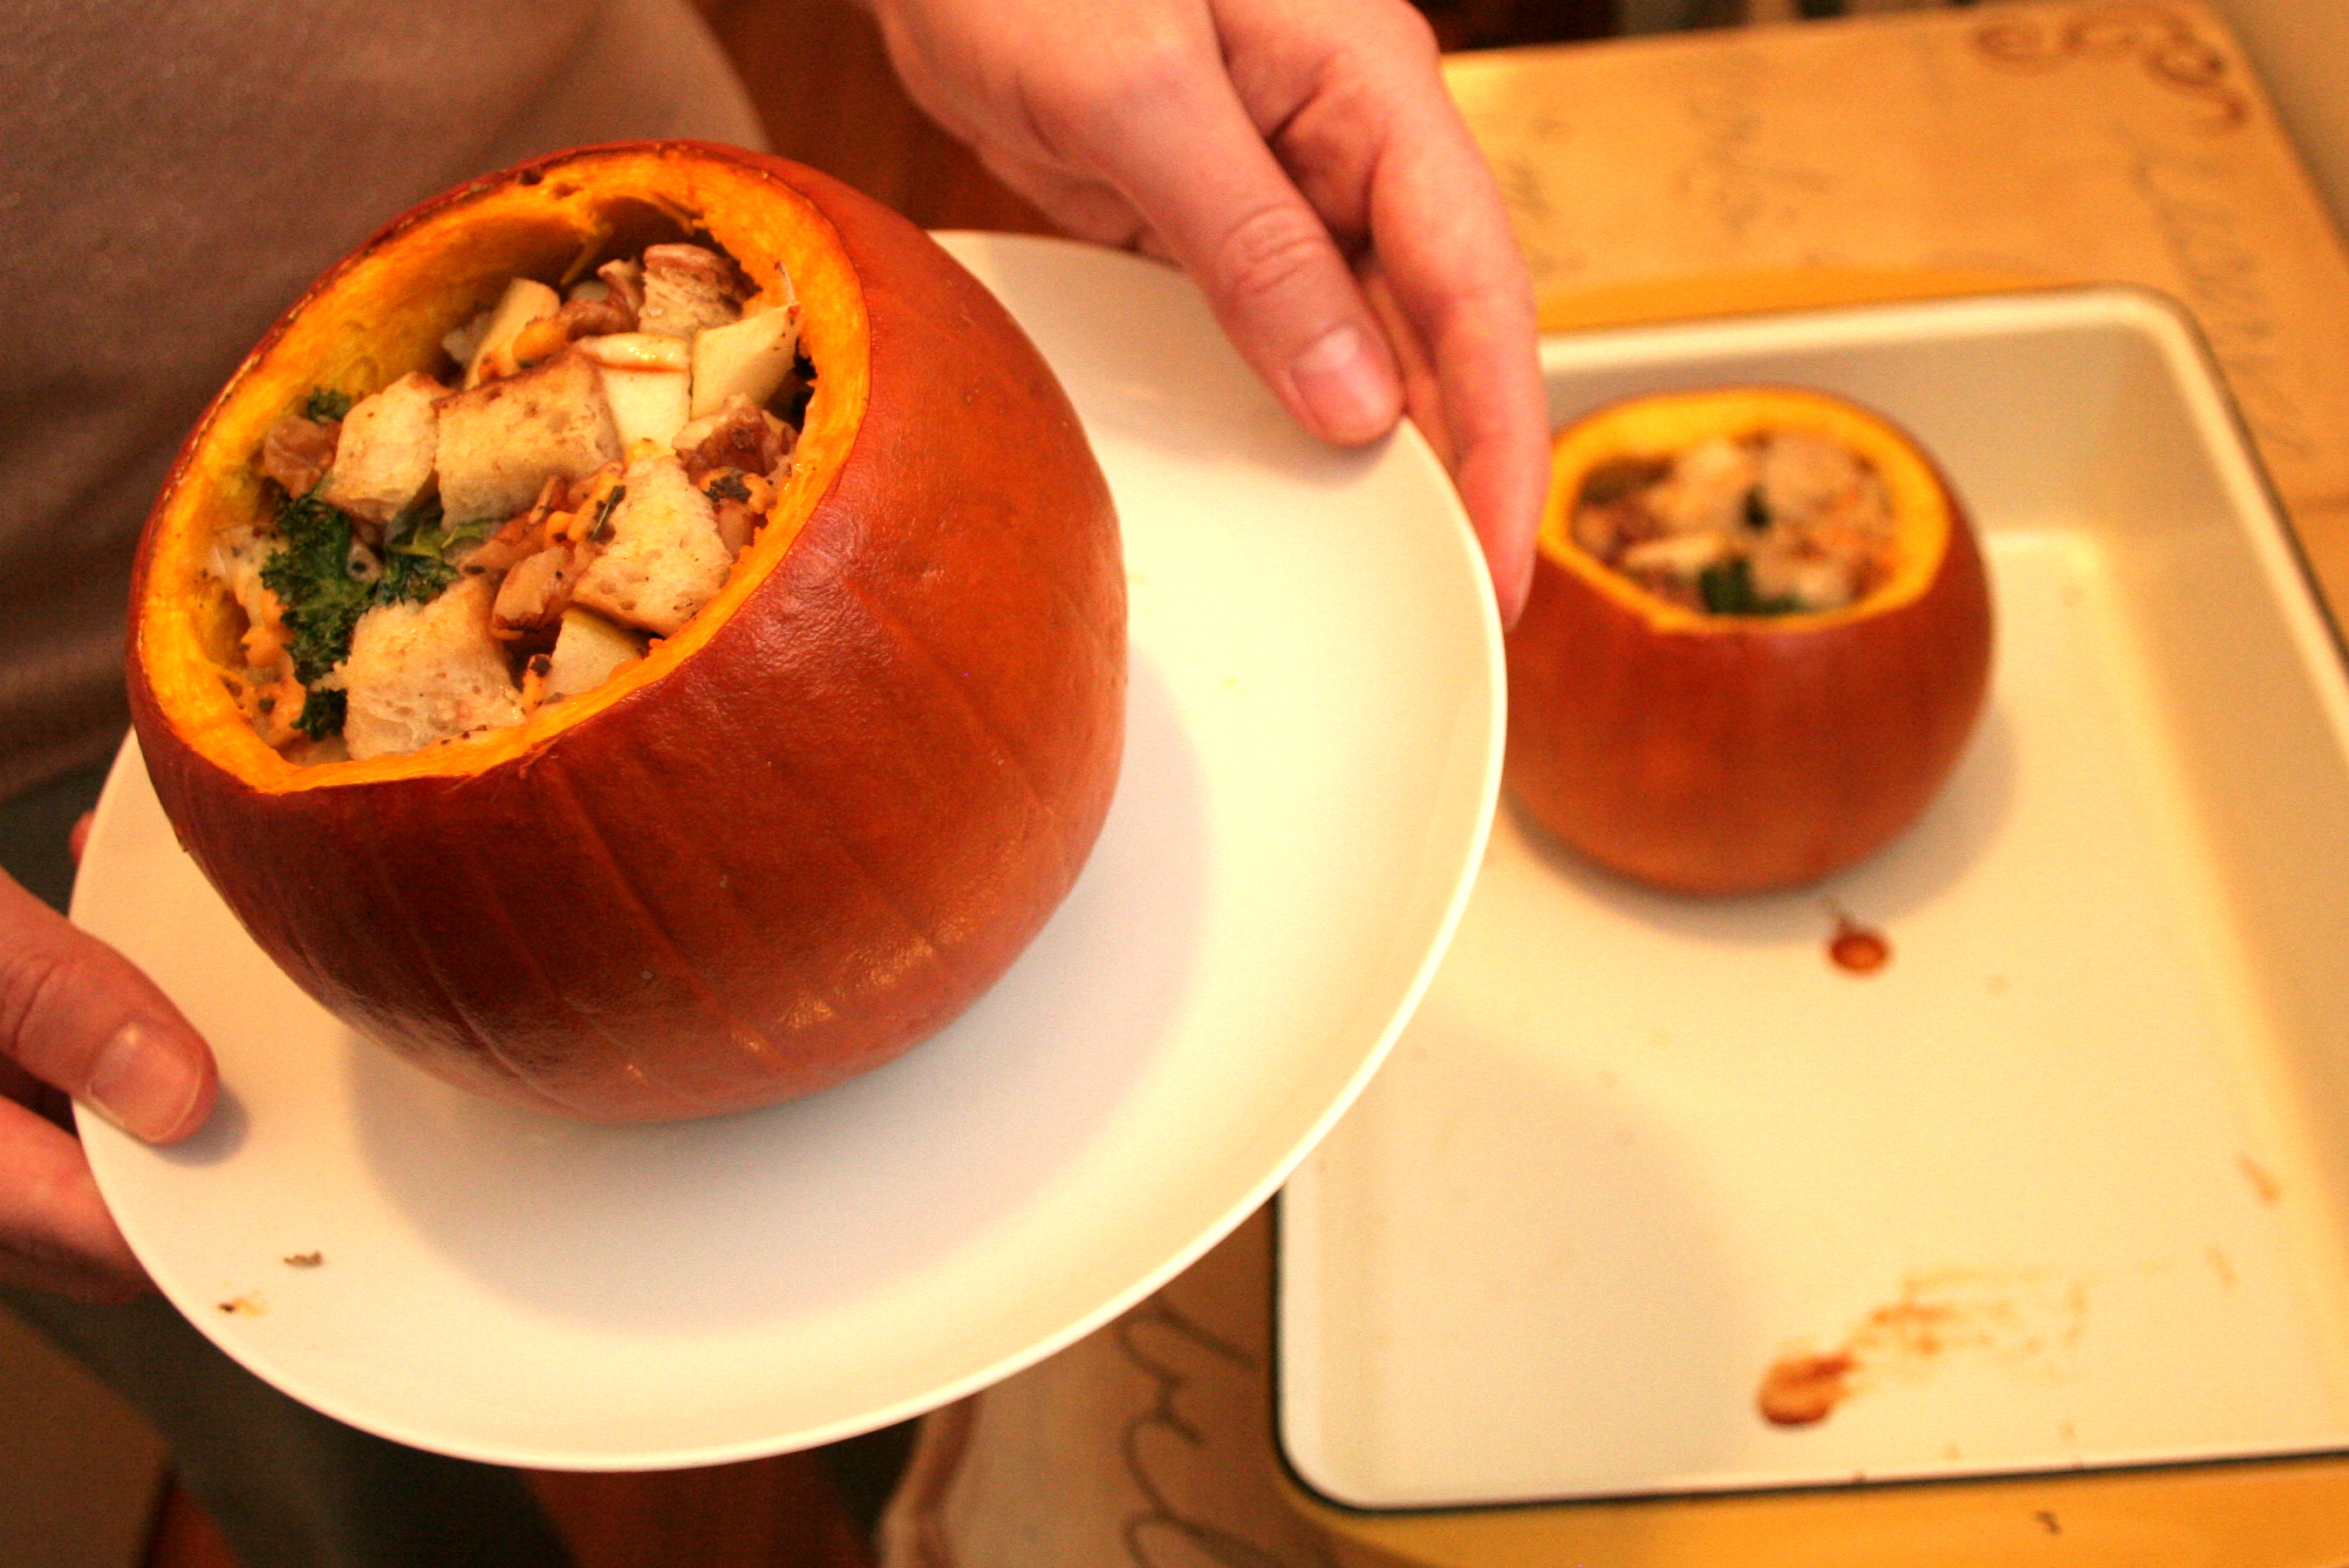 Baked Stuffed Pumpkins